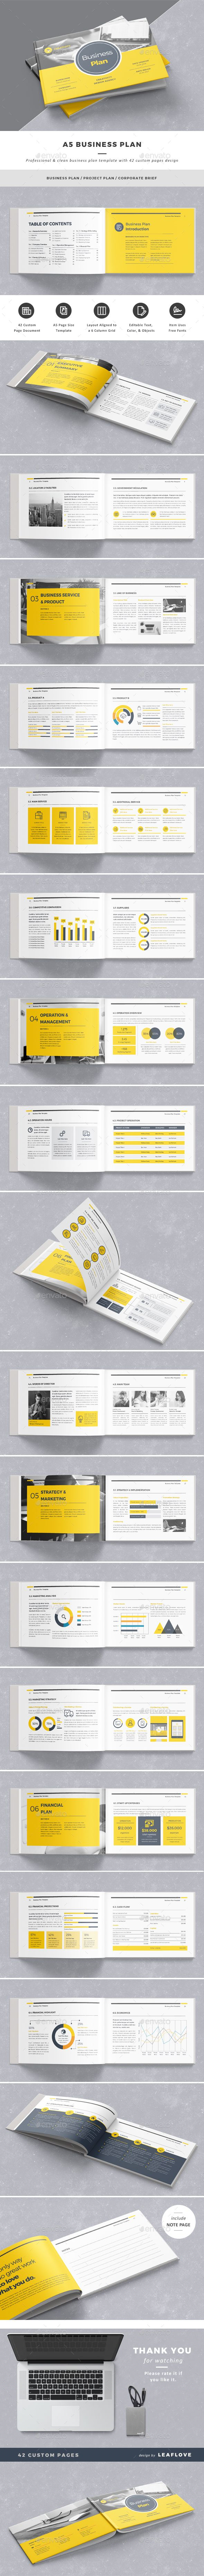 The Best Business Plan Layout Ideas On Pinterest Simple - Indesign business plan template